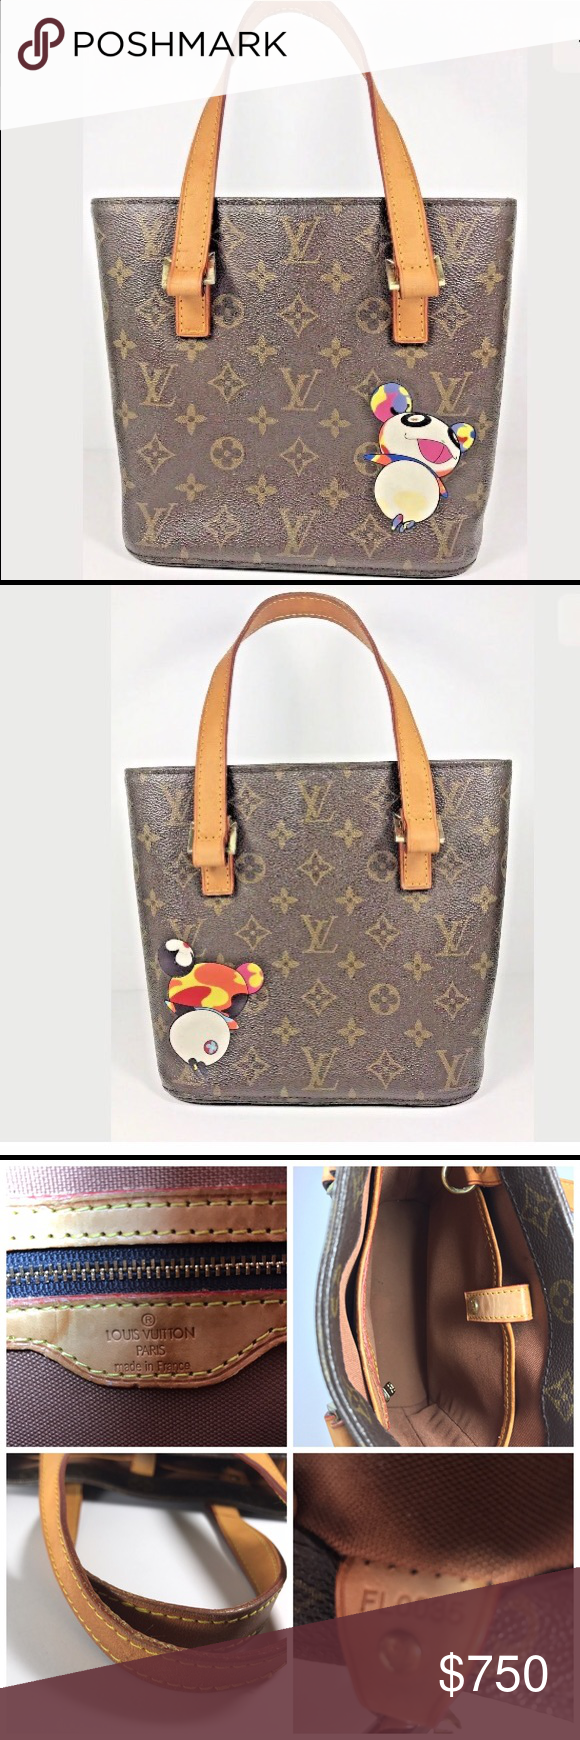 c768829a271c Authentic LOUIS VUITTON Vavin PM Murakami Panda ❤️Very good condition❤ Date  code